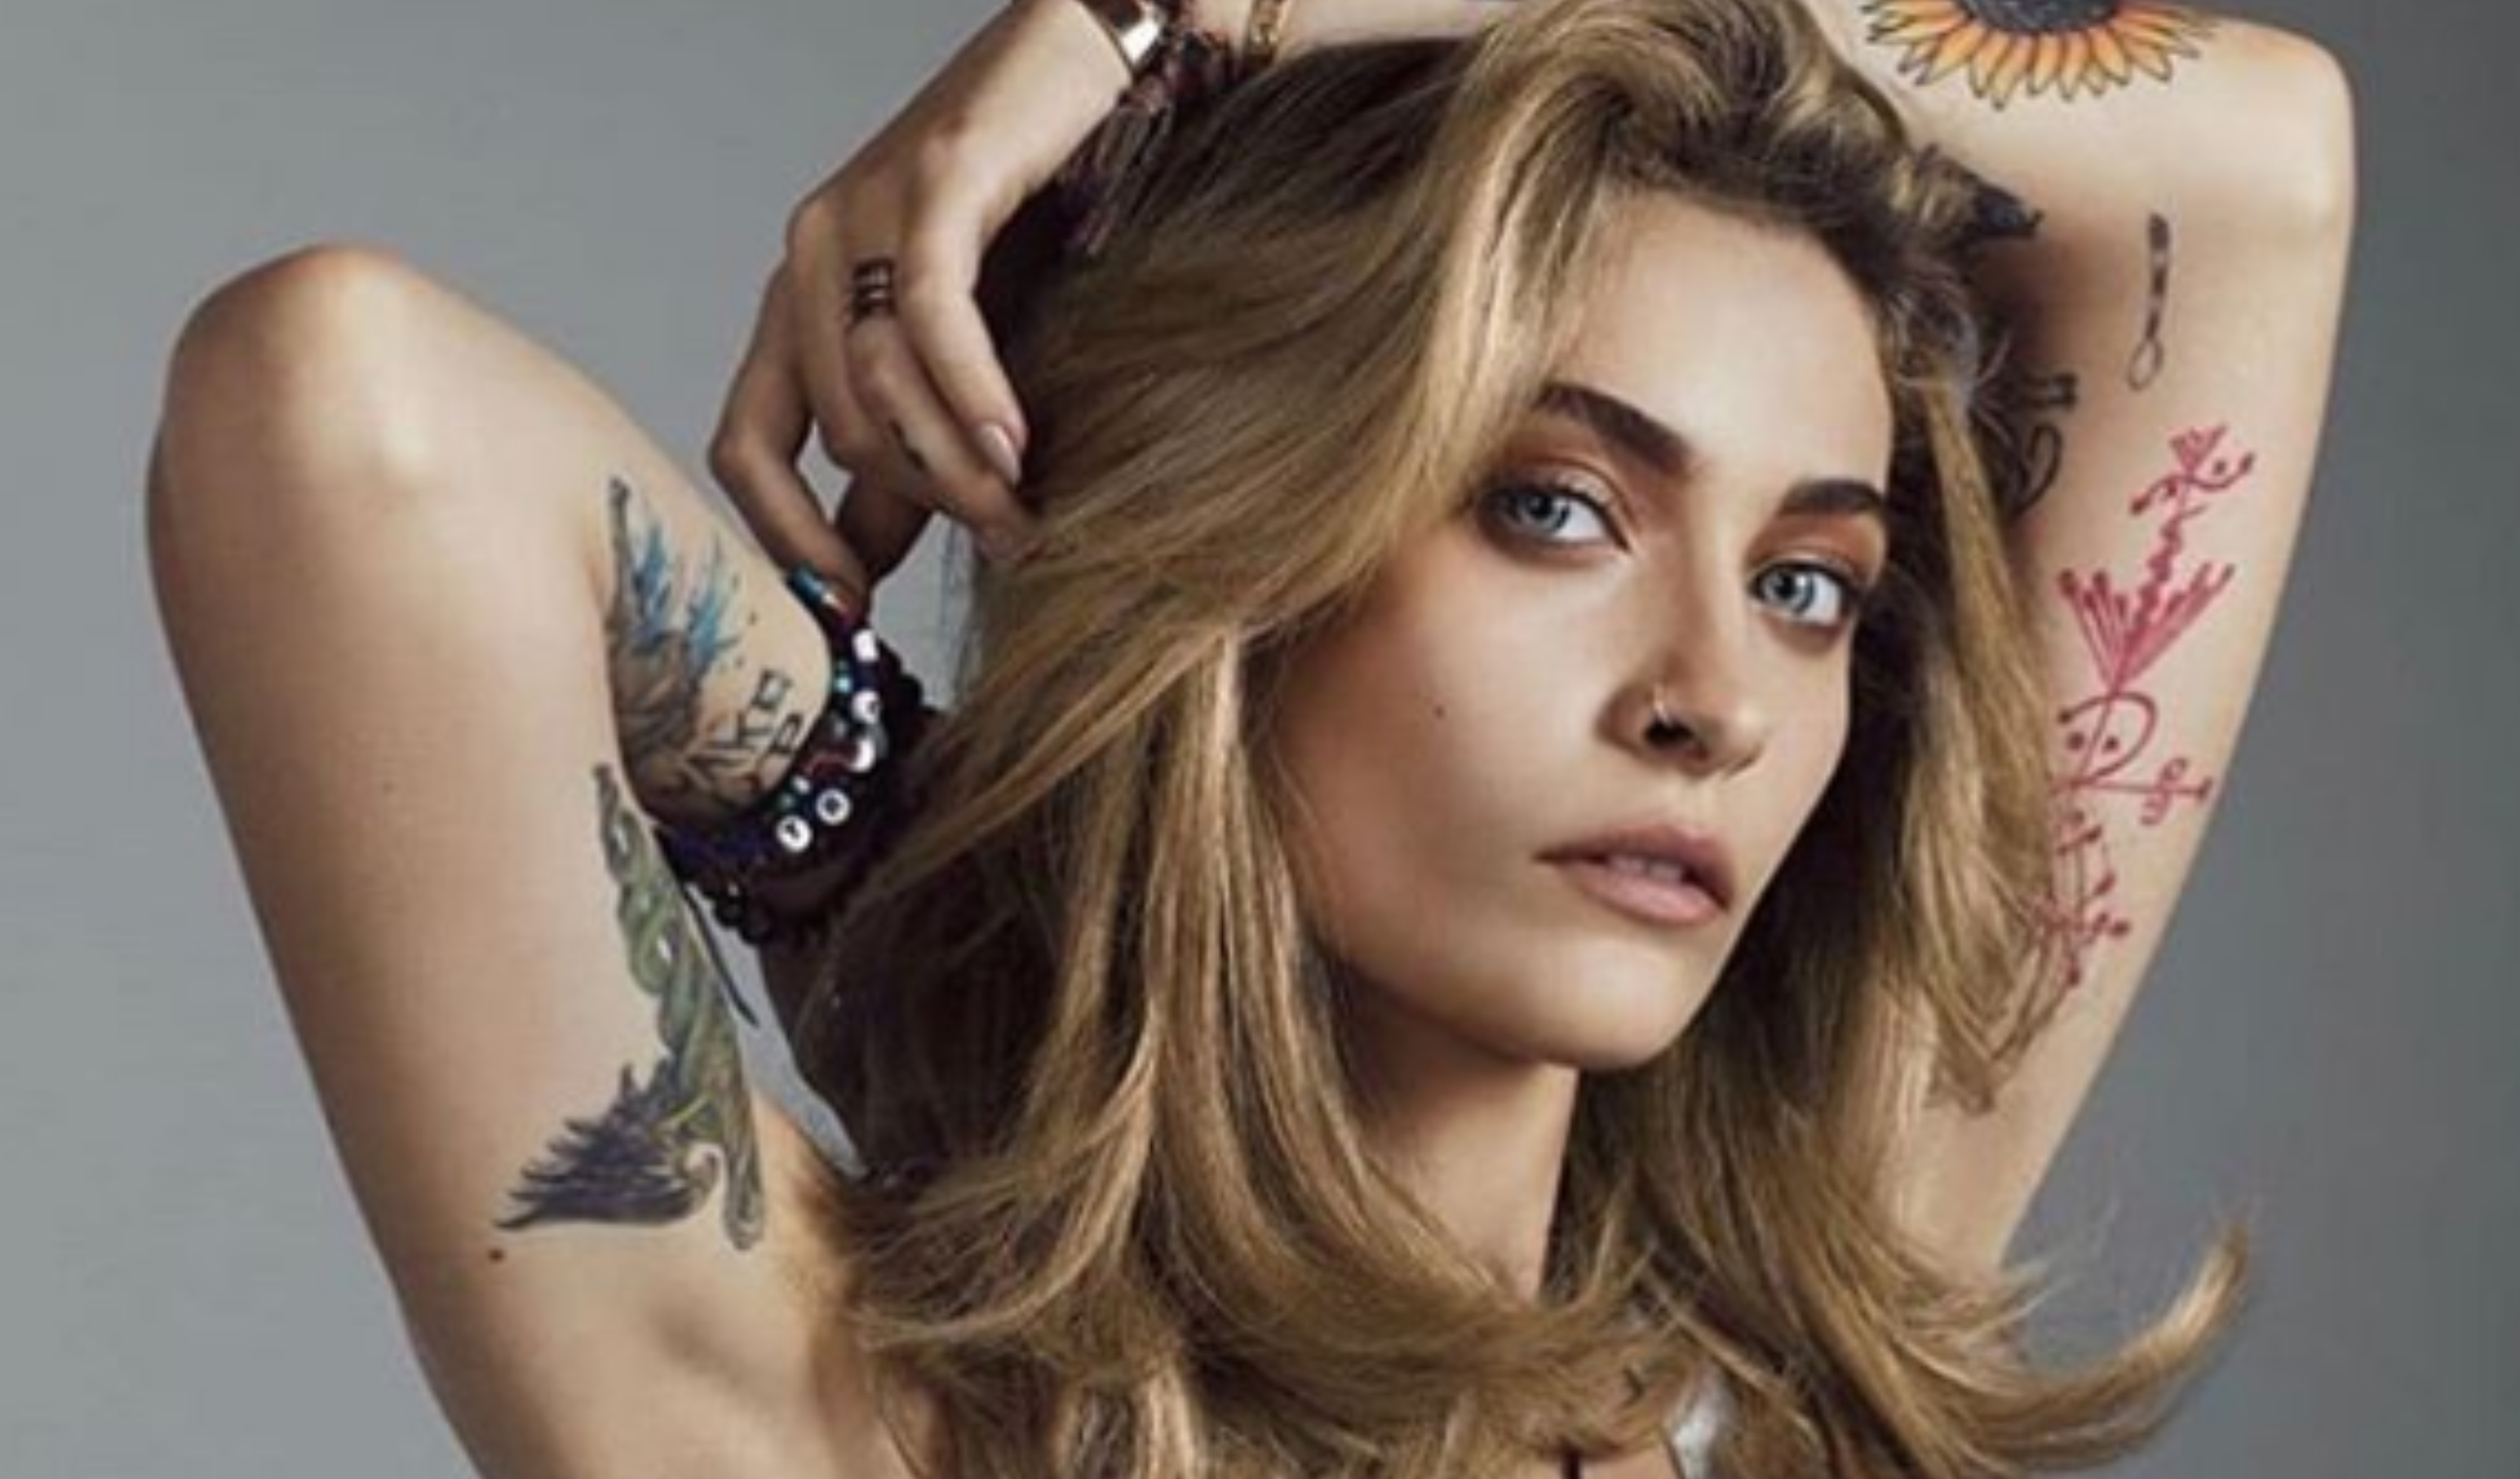 'Not my role' to defend Michael Jackson against abuse claims, says Paris Jackson